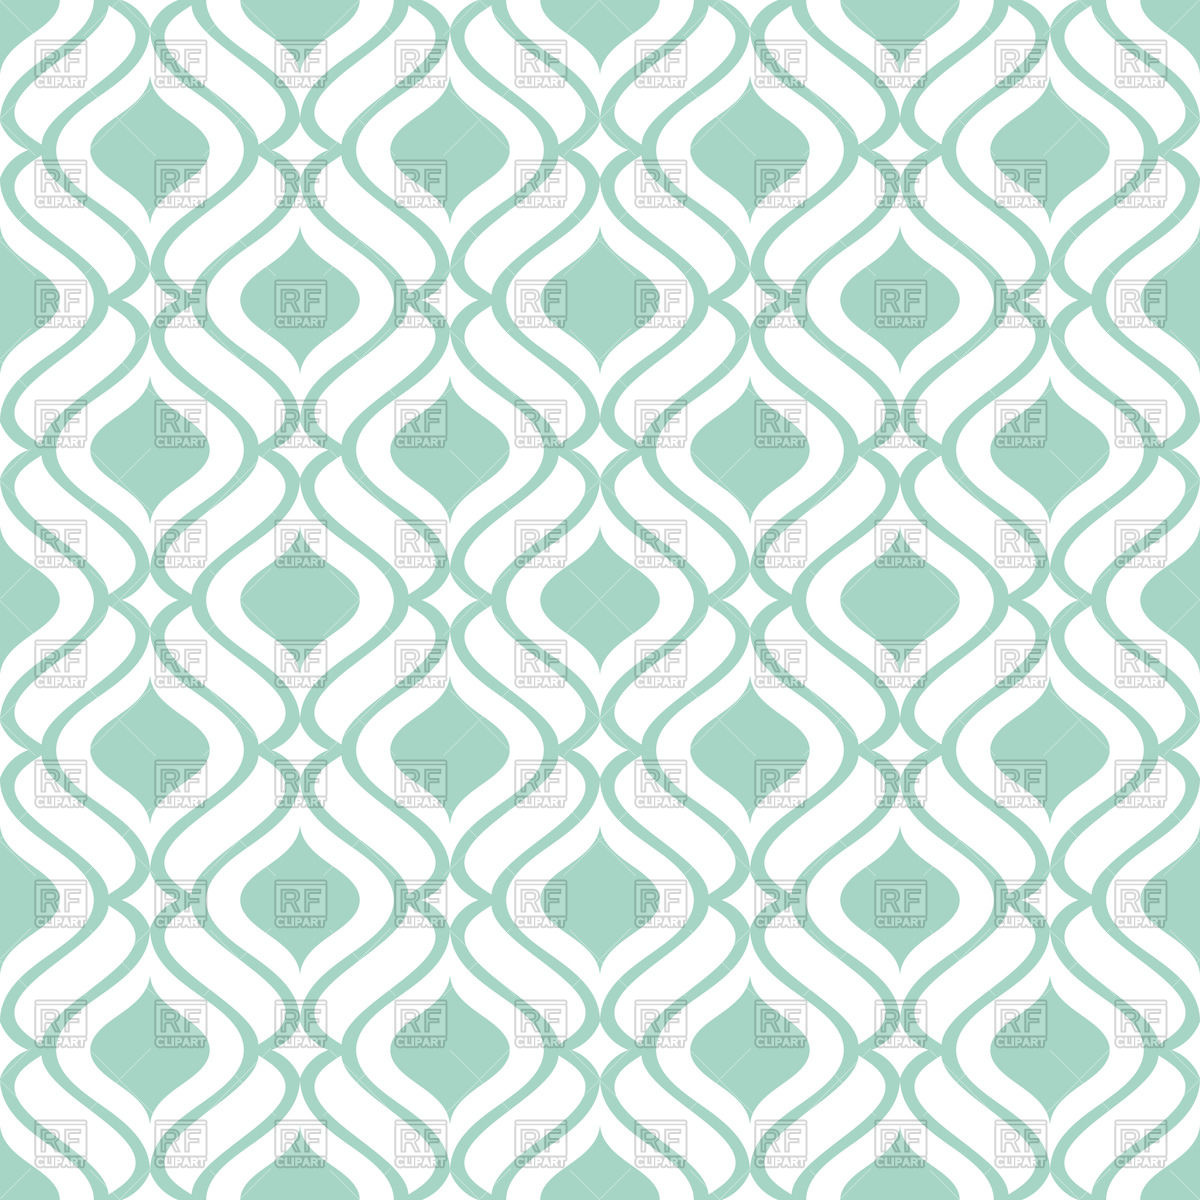 Simple Green And White Wallpaper With Seamless Geometric Pattern